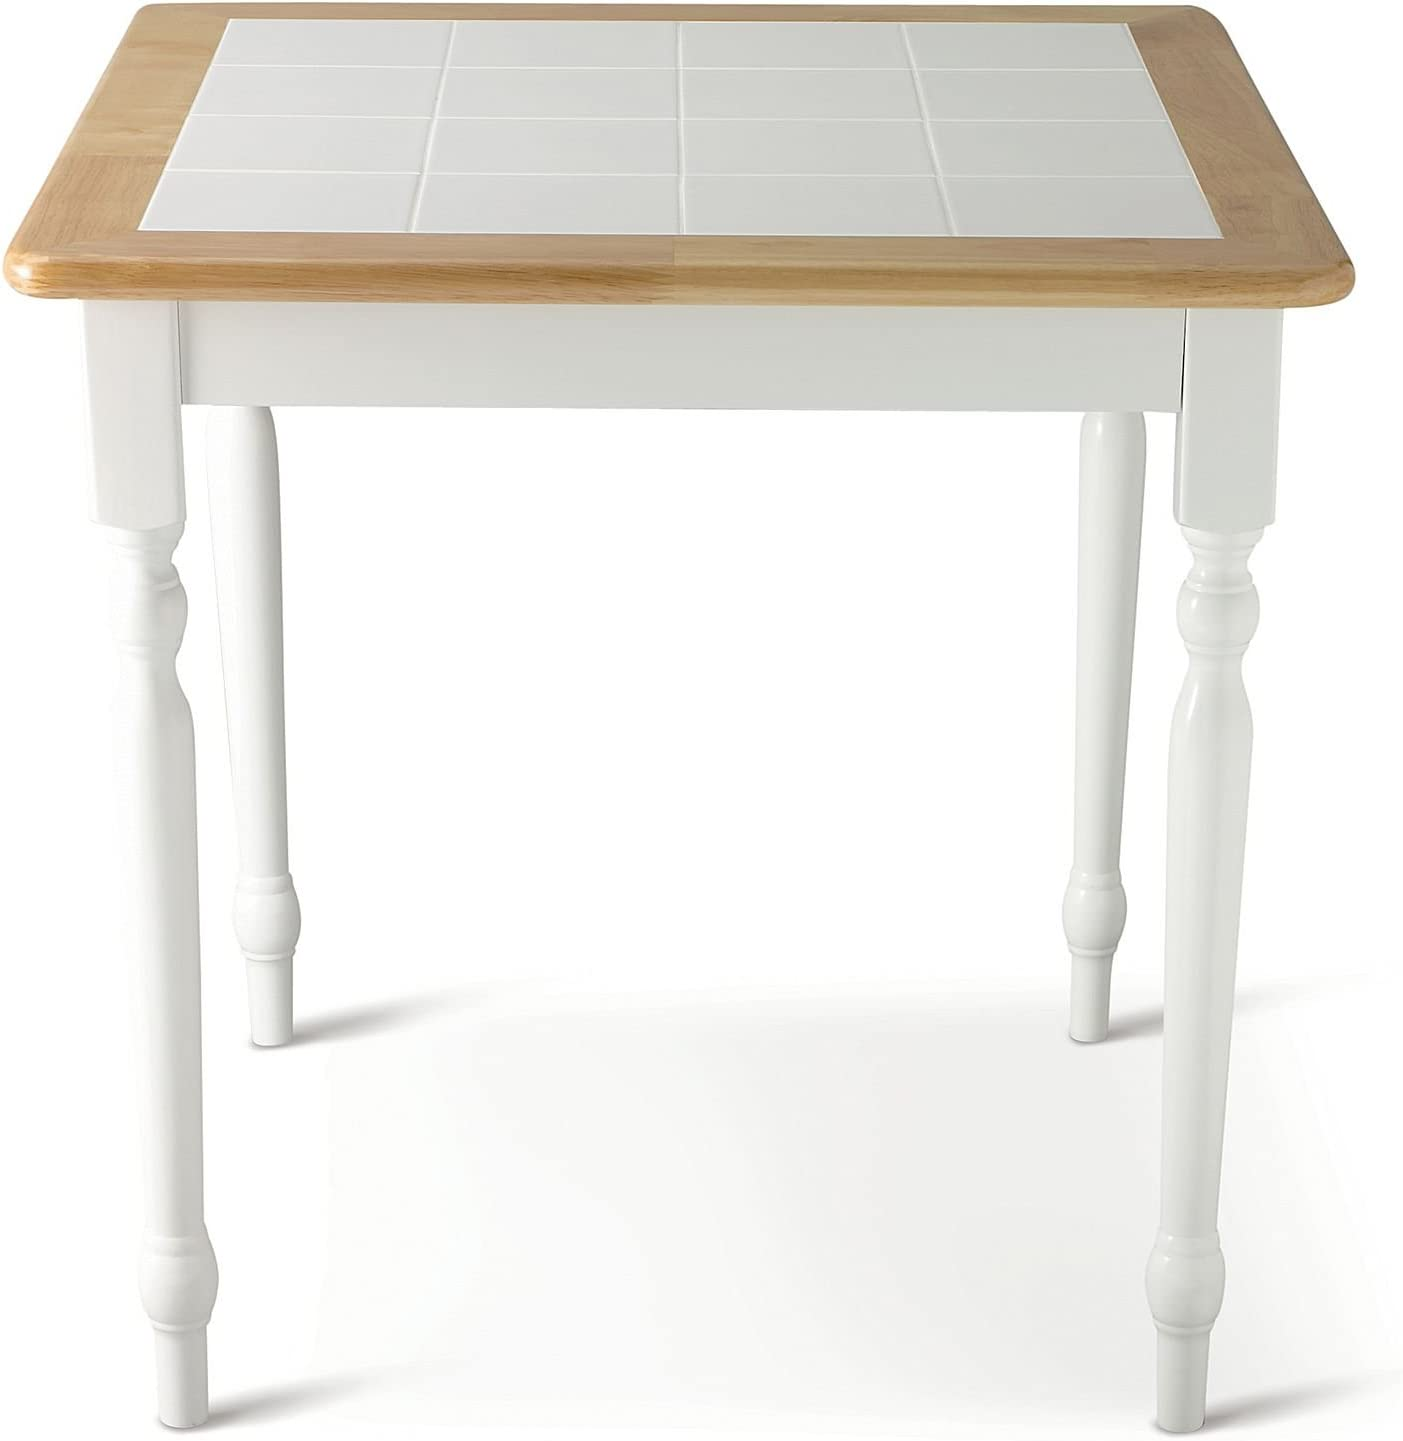 Amazon Com Willow 29 Square Dining Table White Kitchen Furniture Decor Dining Room Table Ceramic Tile Tabletop Long Lastng Natural Wood Construction 250 Pound Capacity Tables